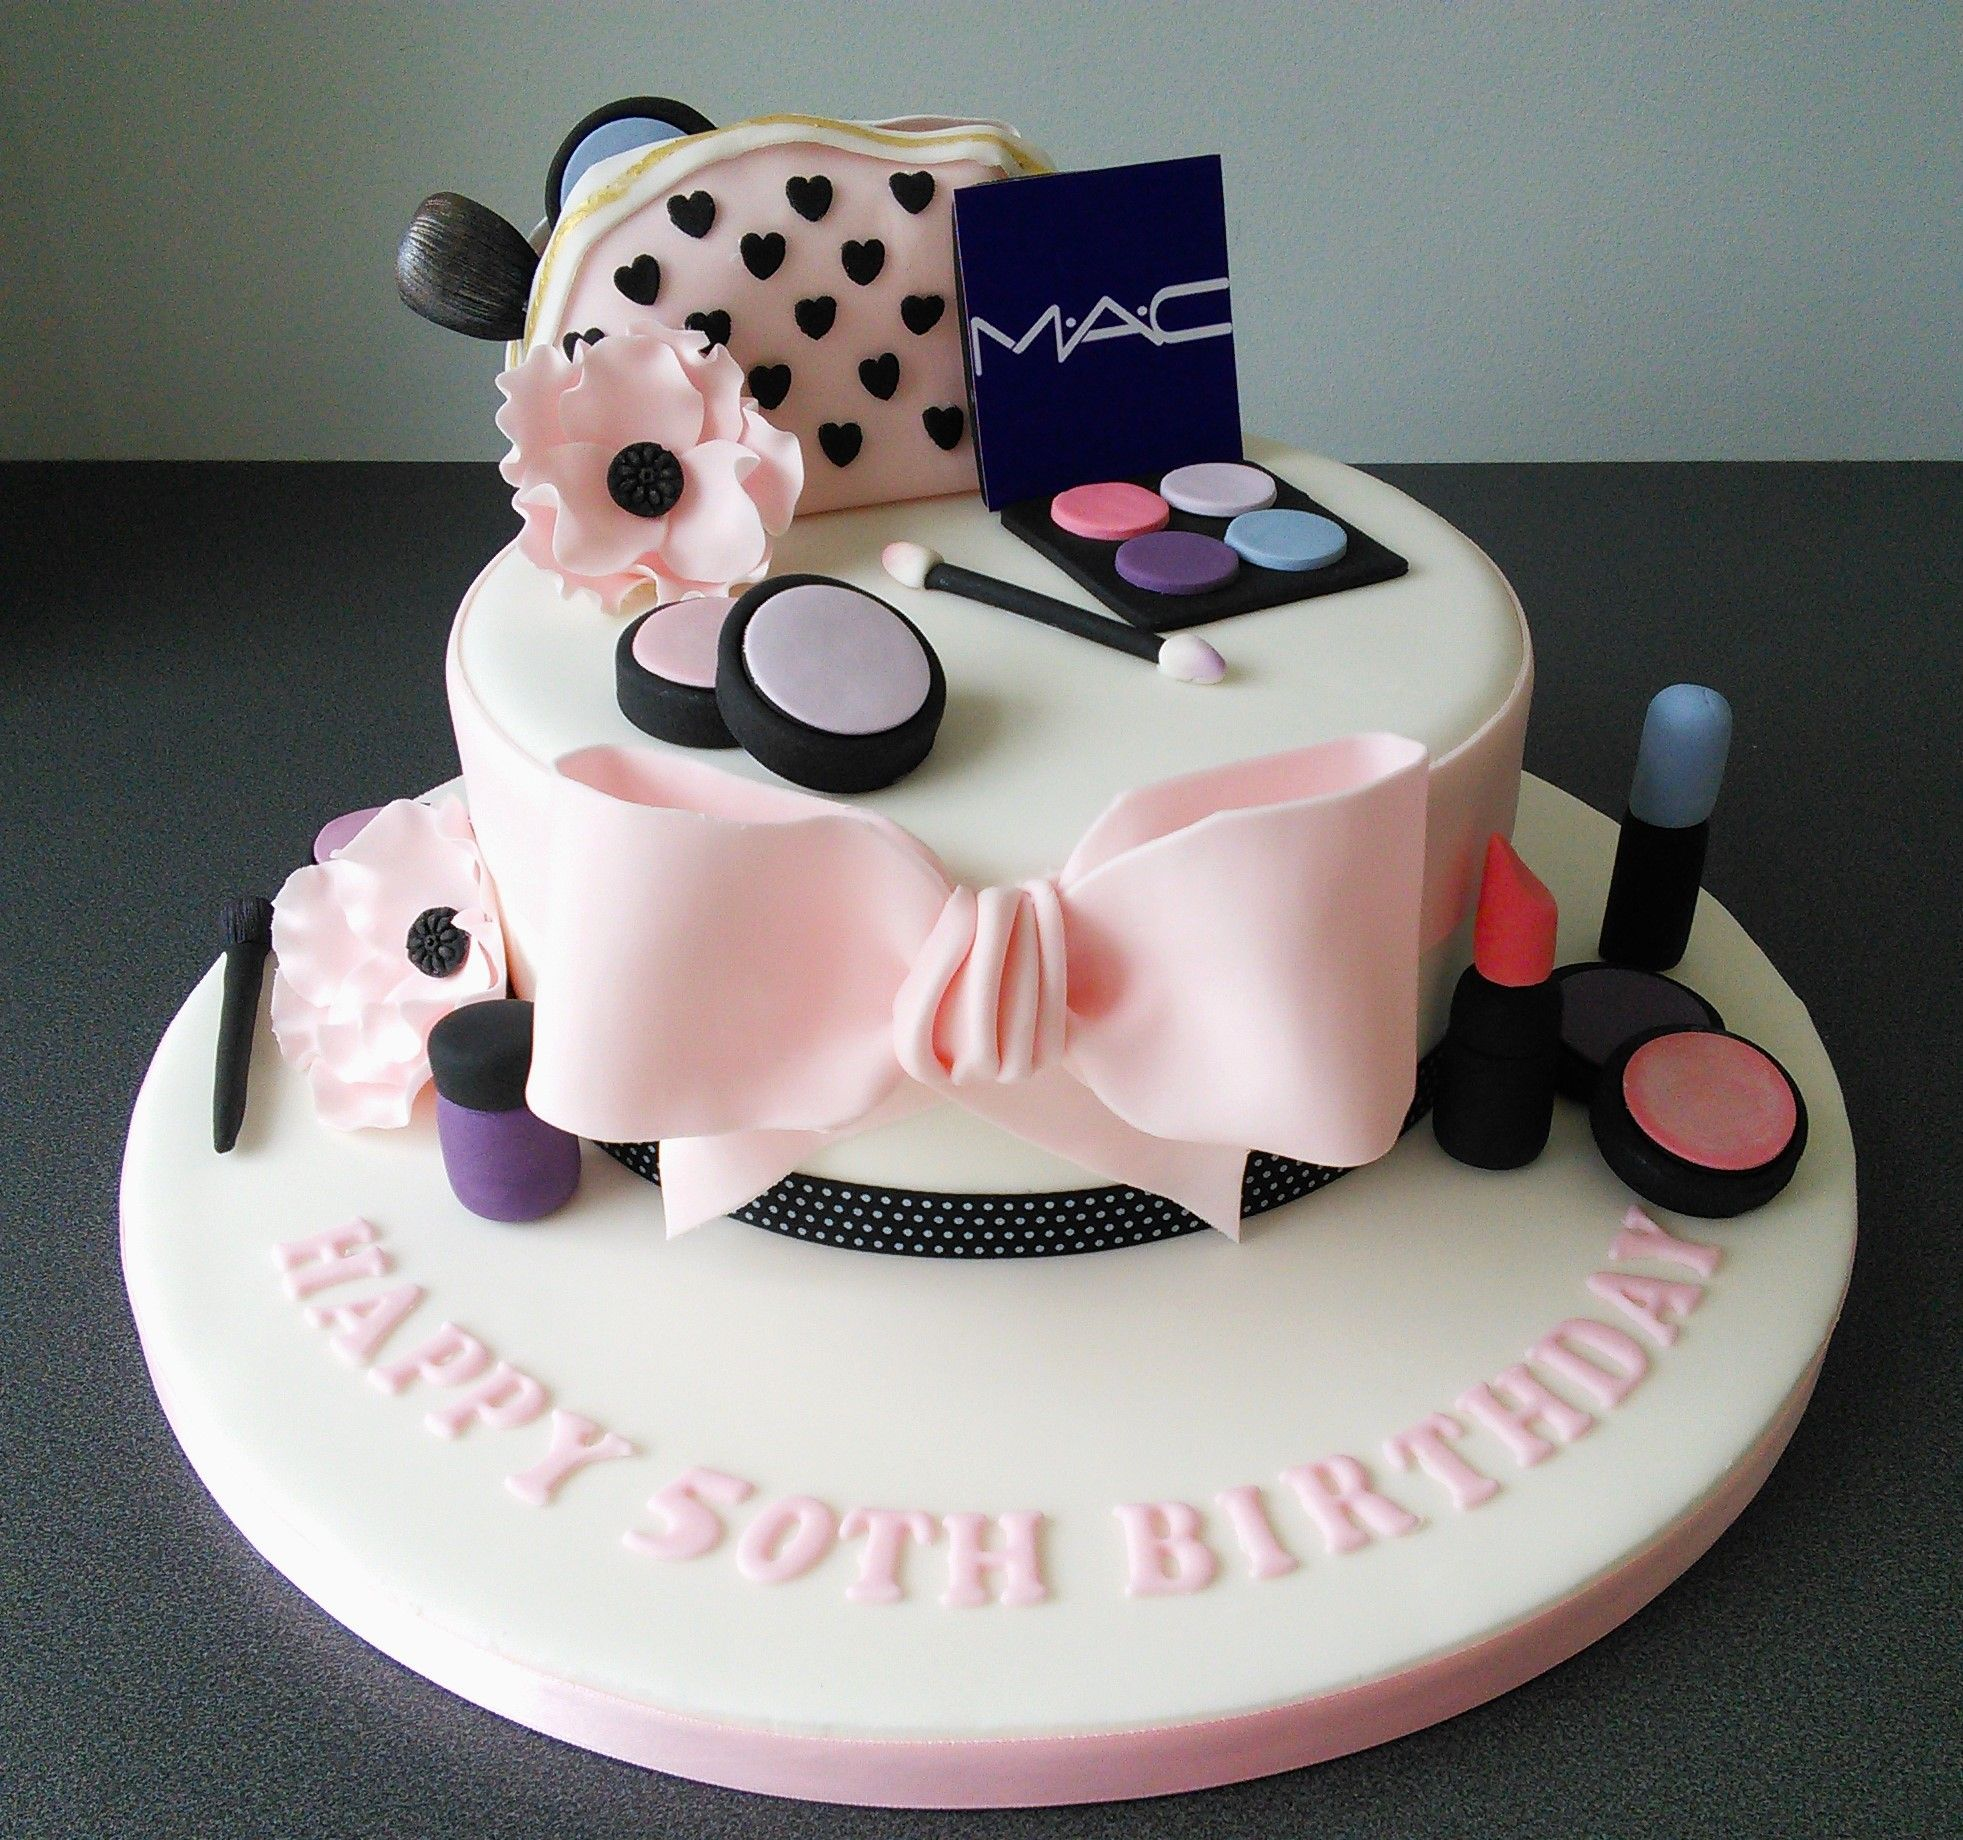 50th Birthday Mac Make Up Cake With Make Up Bag Flower And Bow In